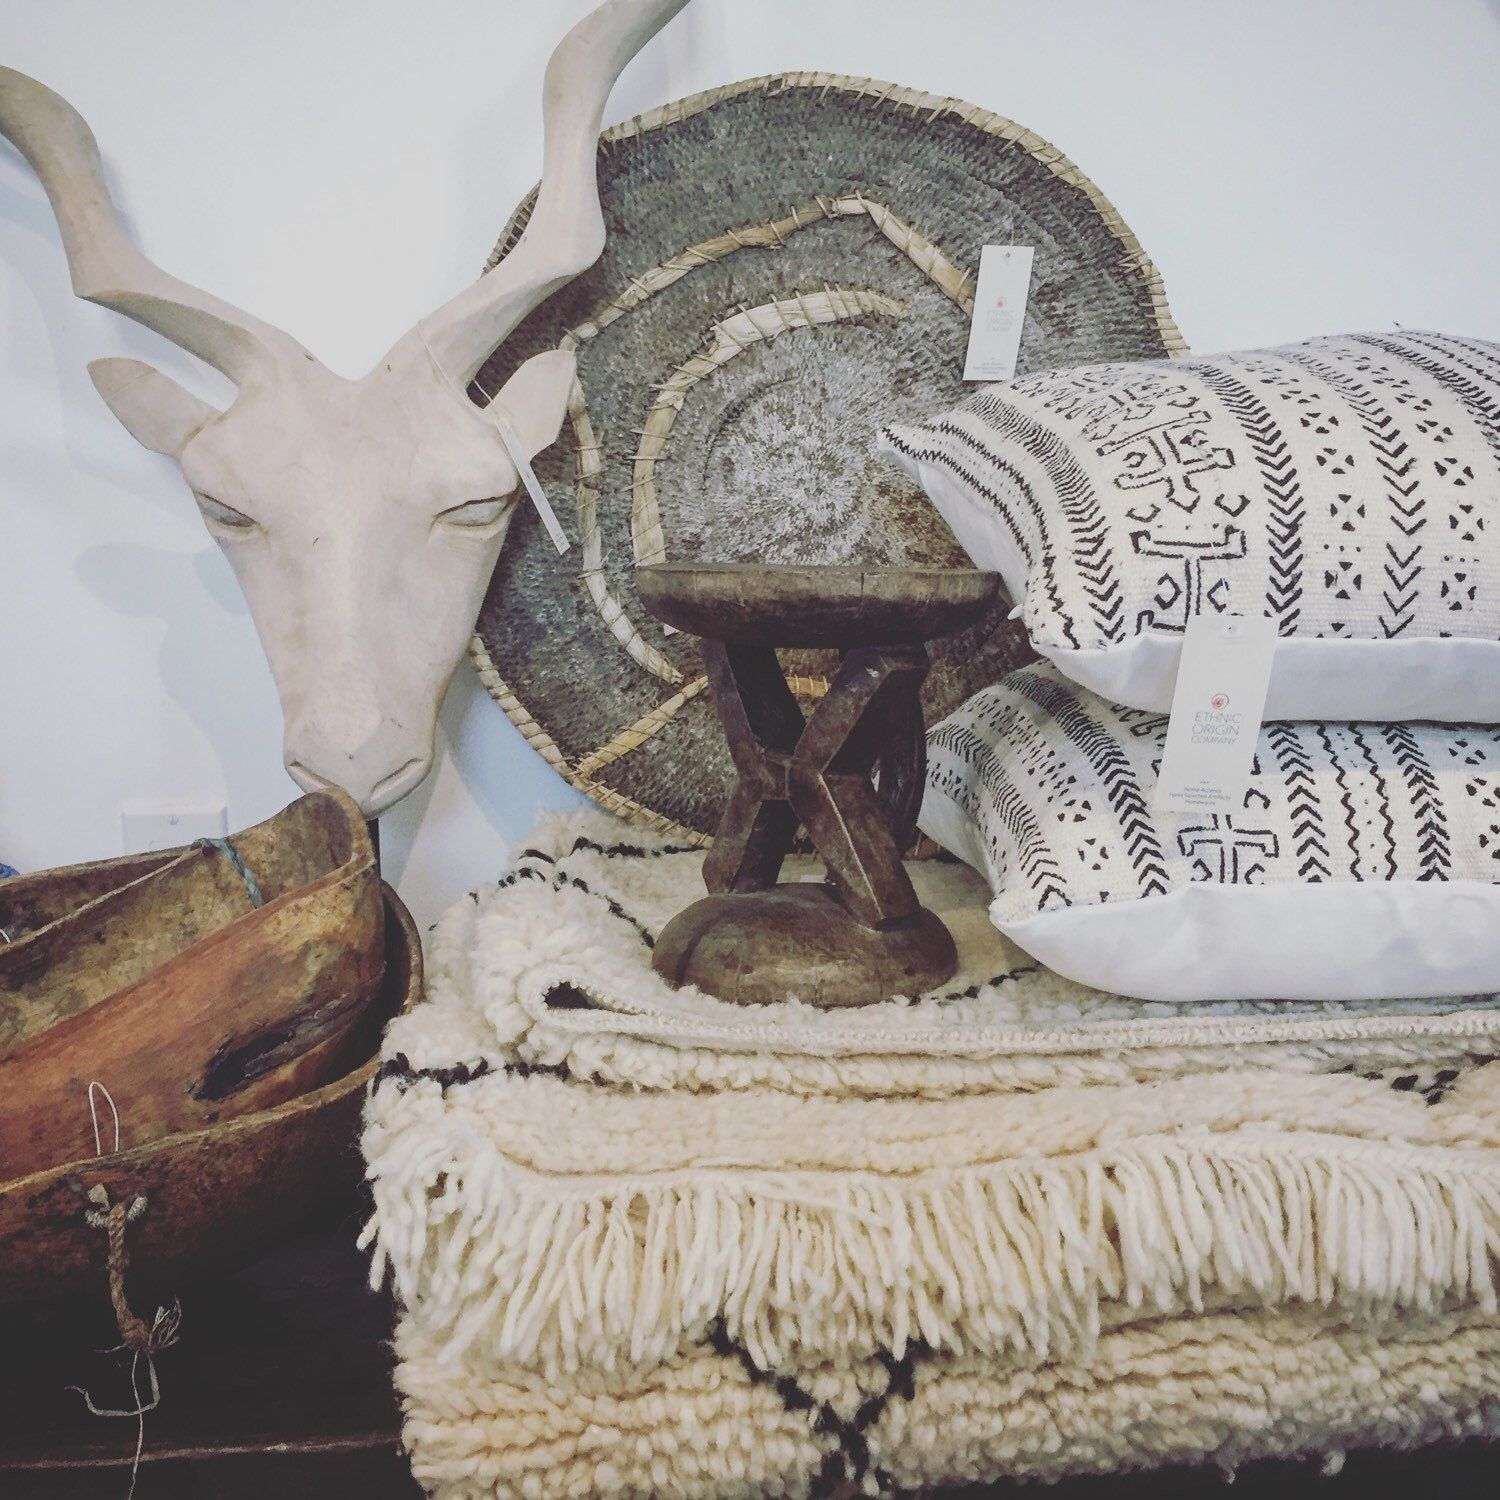 Mudcloth Pillows From Mali, Vintage Makenge Basket From